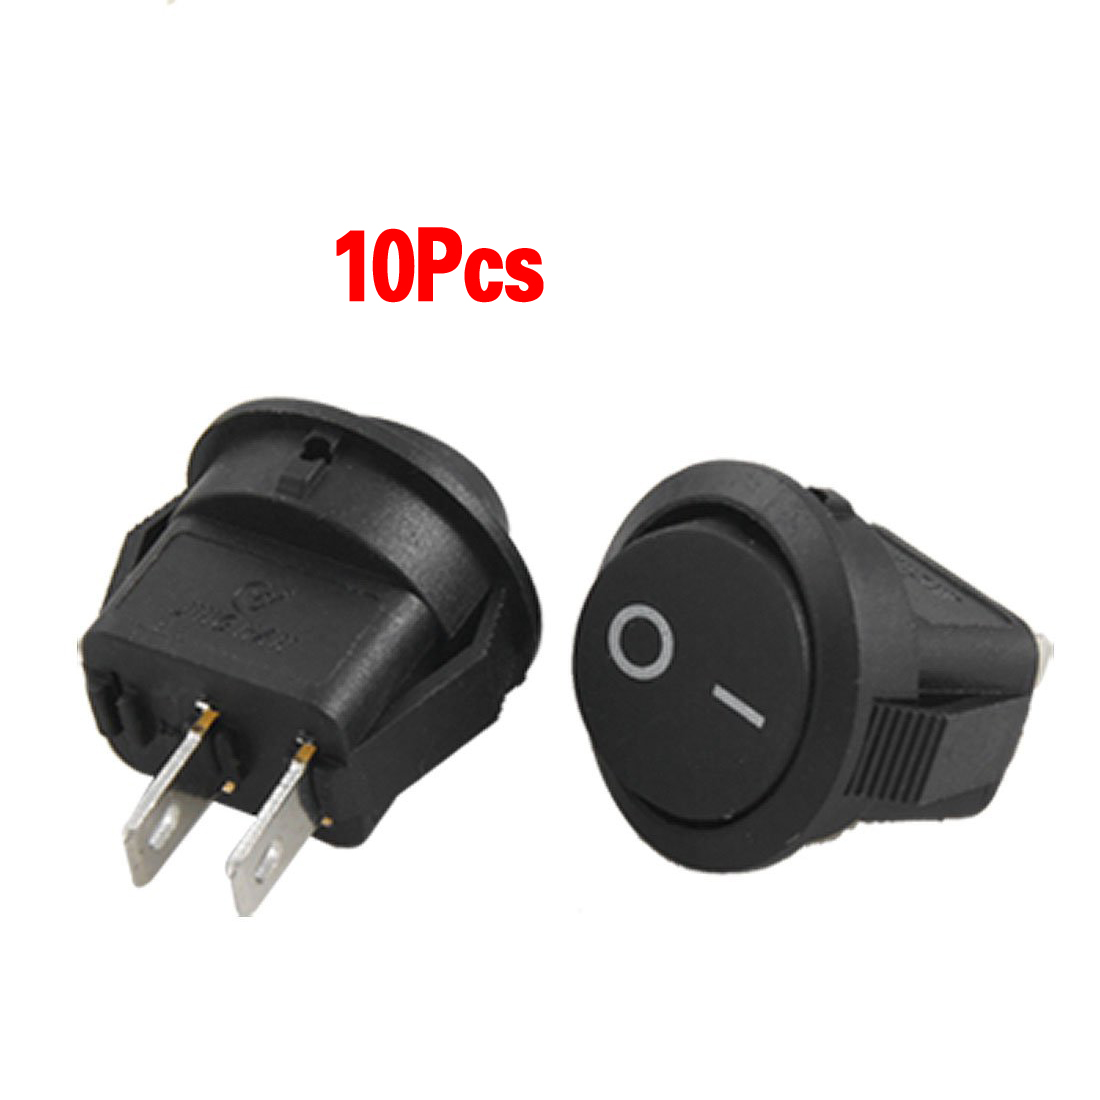 MYLB-10pcsx AC 3A/250V 6A/125V ON-OFF I/O SPST 2 Pin Snap in Round Boat Rocker Switch high quality 10 pcs ac 250v 6a ac 125v 10a 2 pin on off spst snap in boat rocker switch